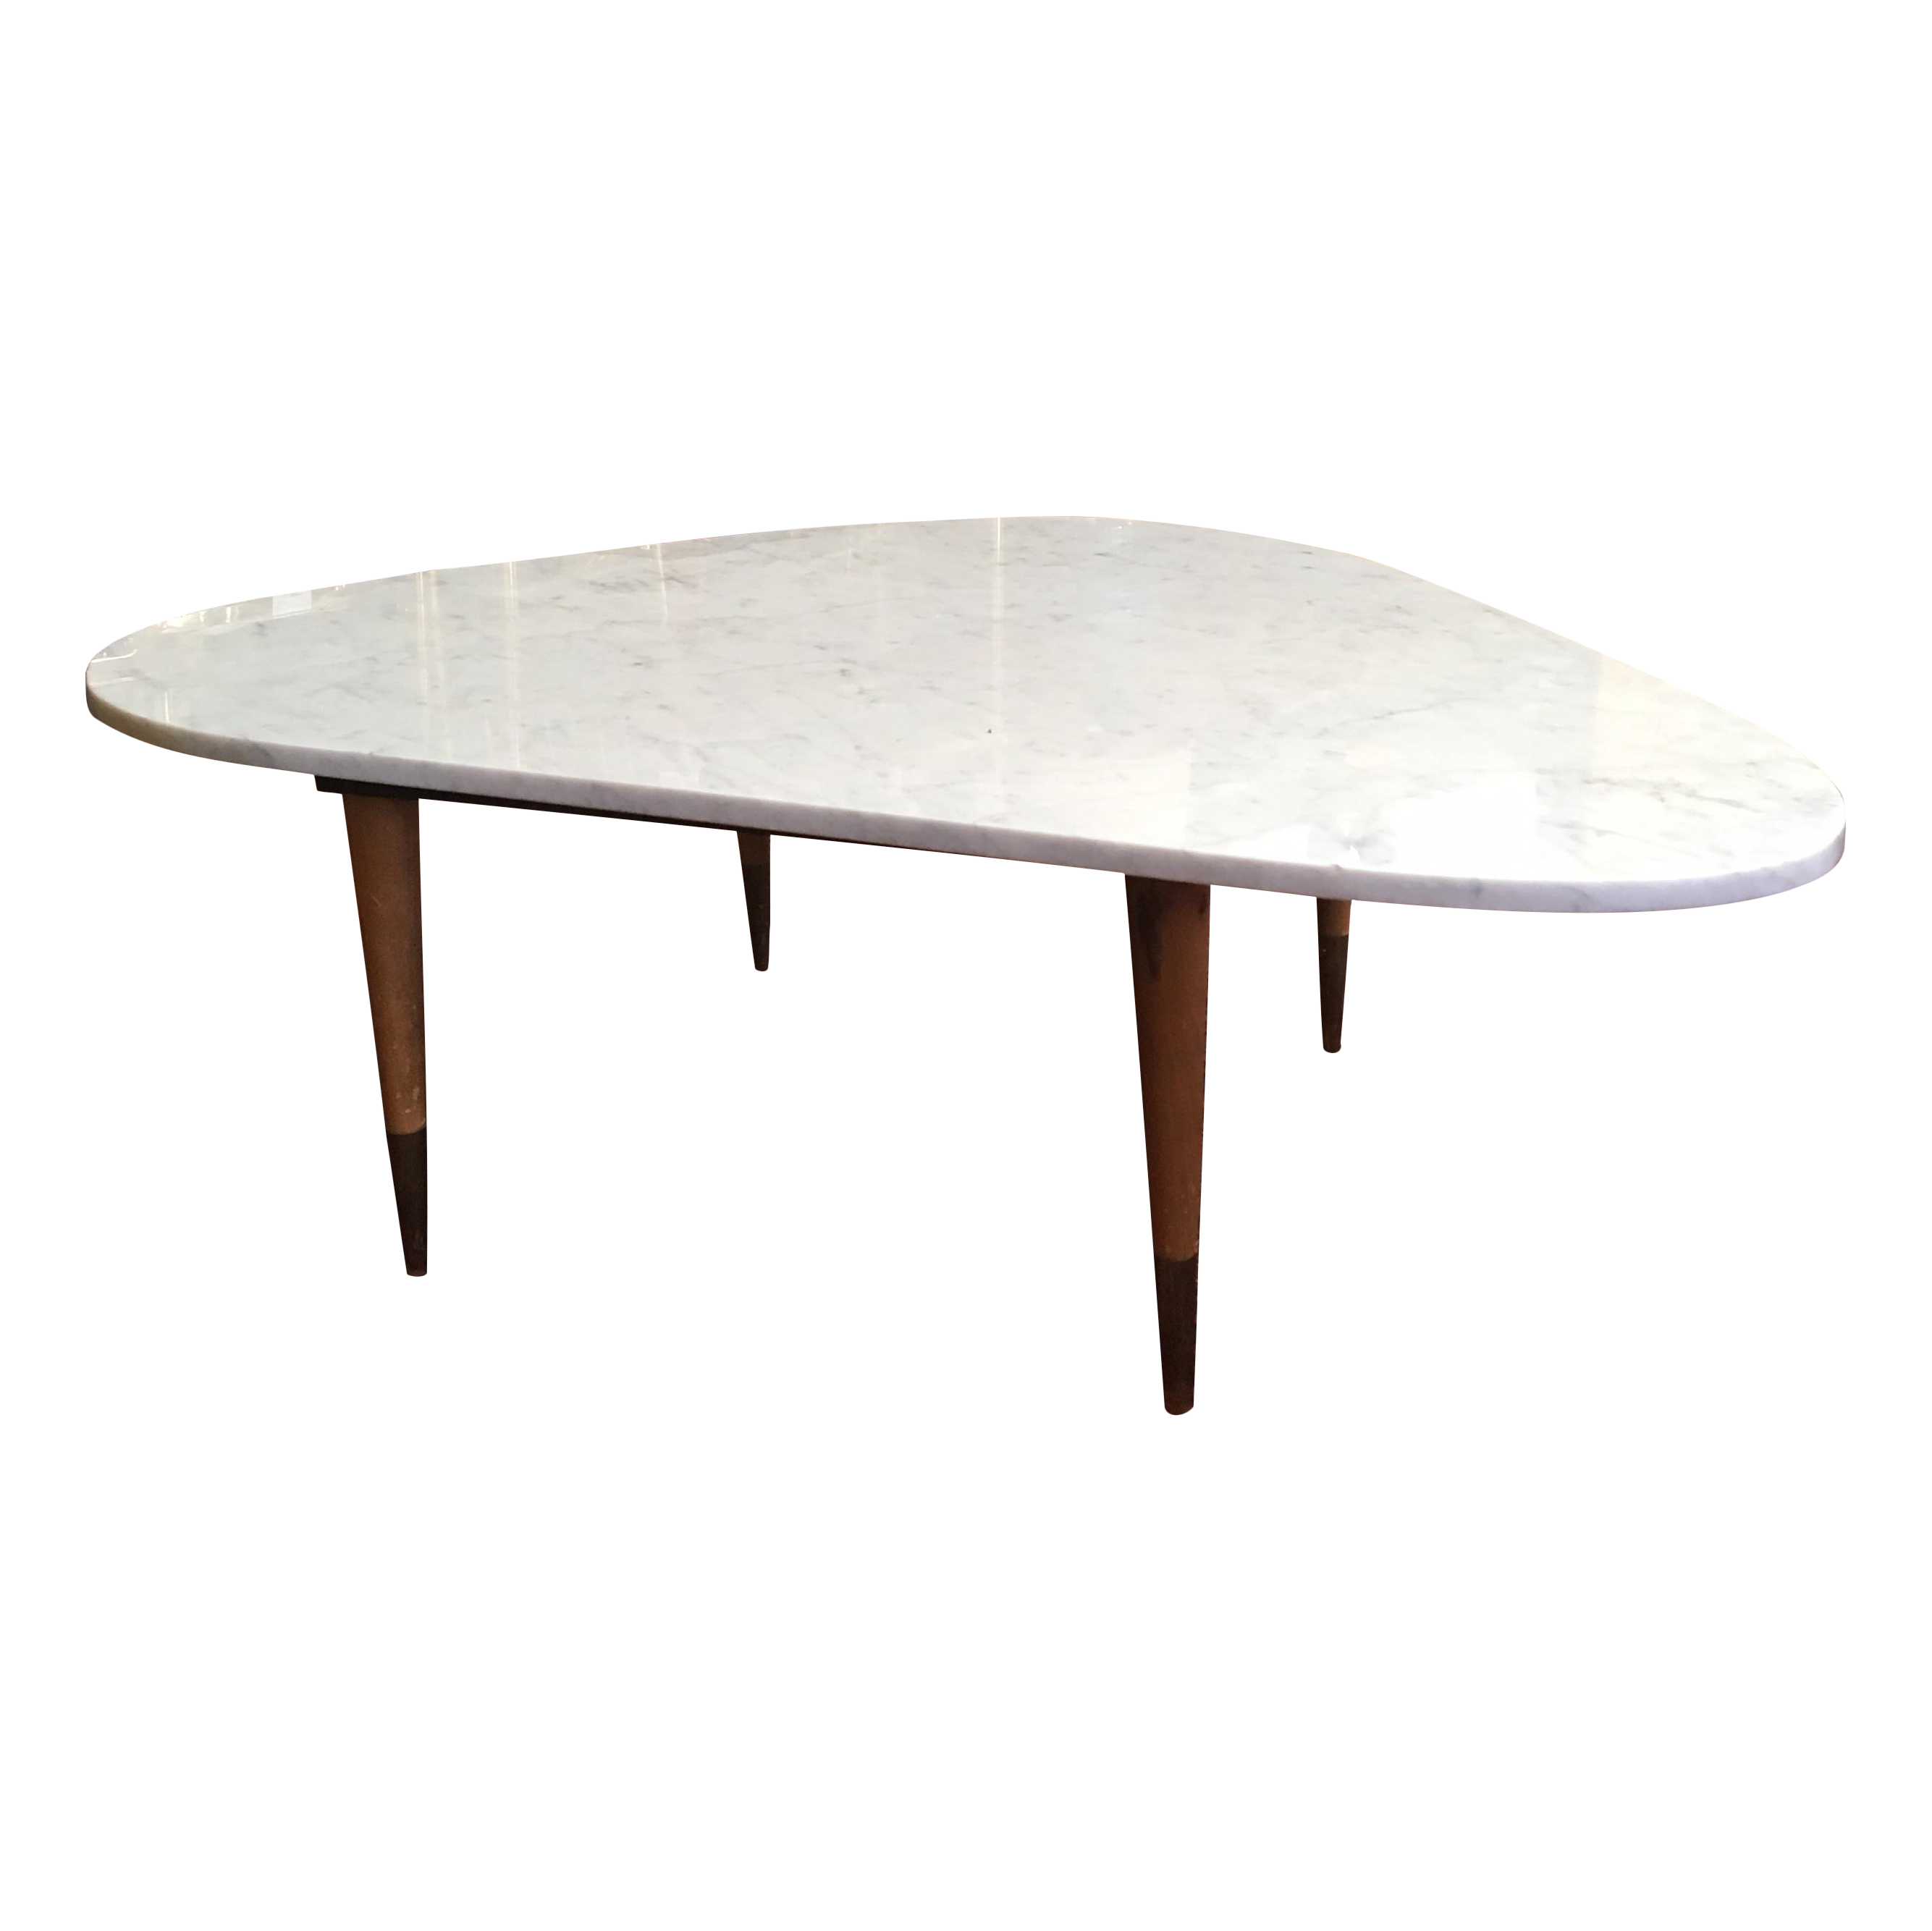 Mid Century Italian Marble Coffee Table Chairish : c4b17e77 ce5e 4983 bda5 4e8d479bf1cf from www.chairish.com size 2669 x 2668 png 1198kB